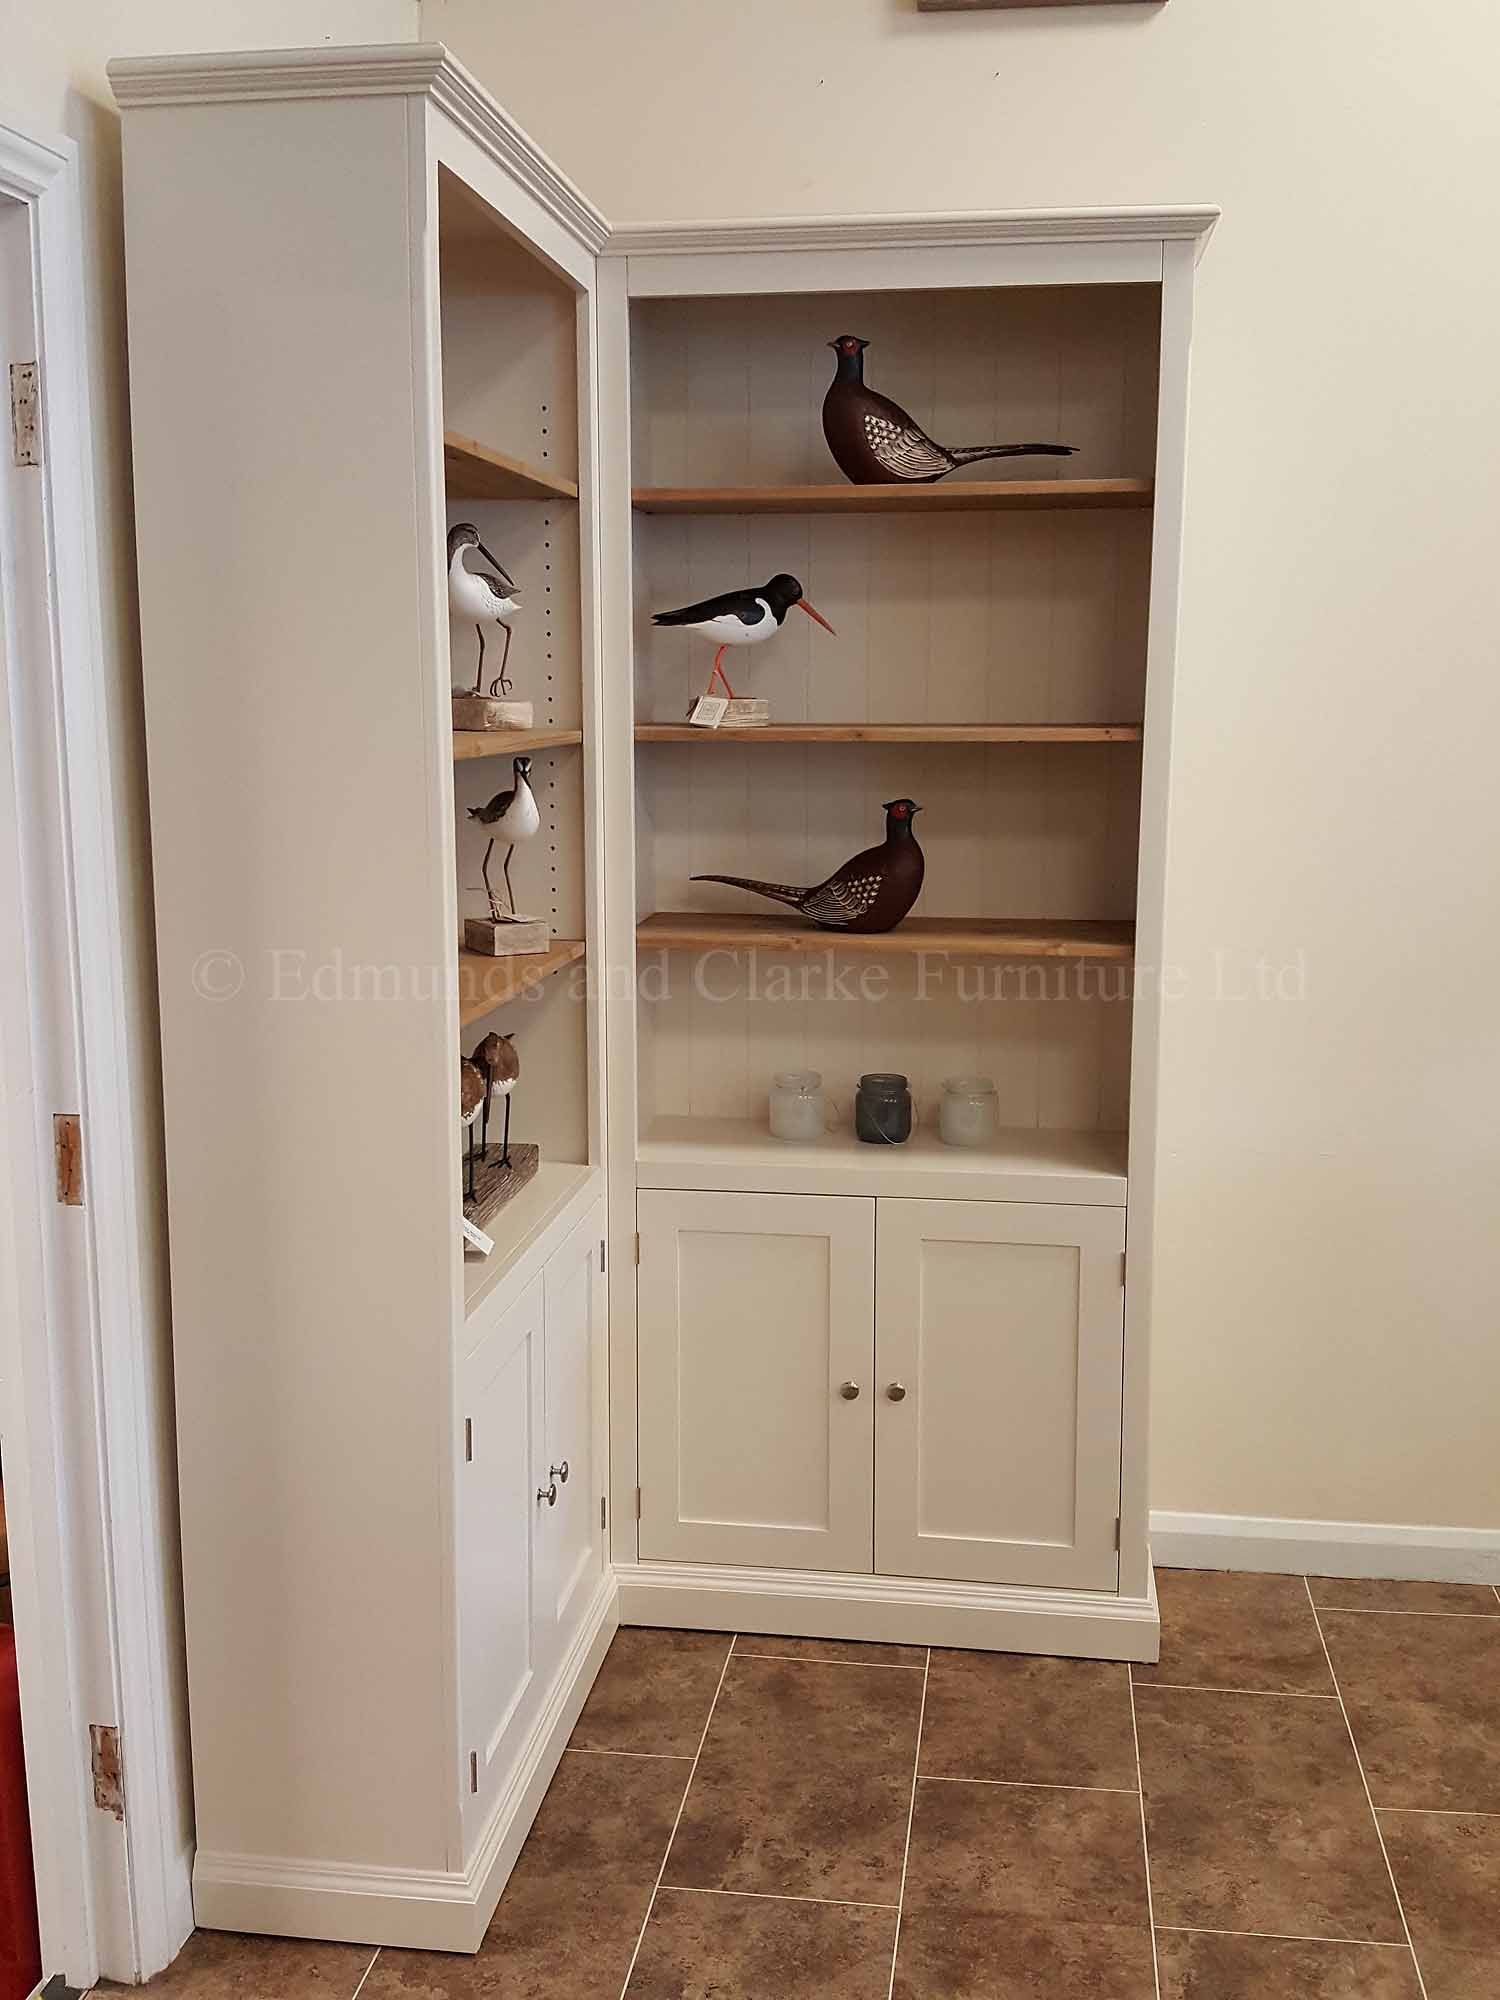 Edmunds four door corner bookcase, made to fit a 4 feet x 4 feet corner